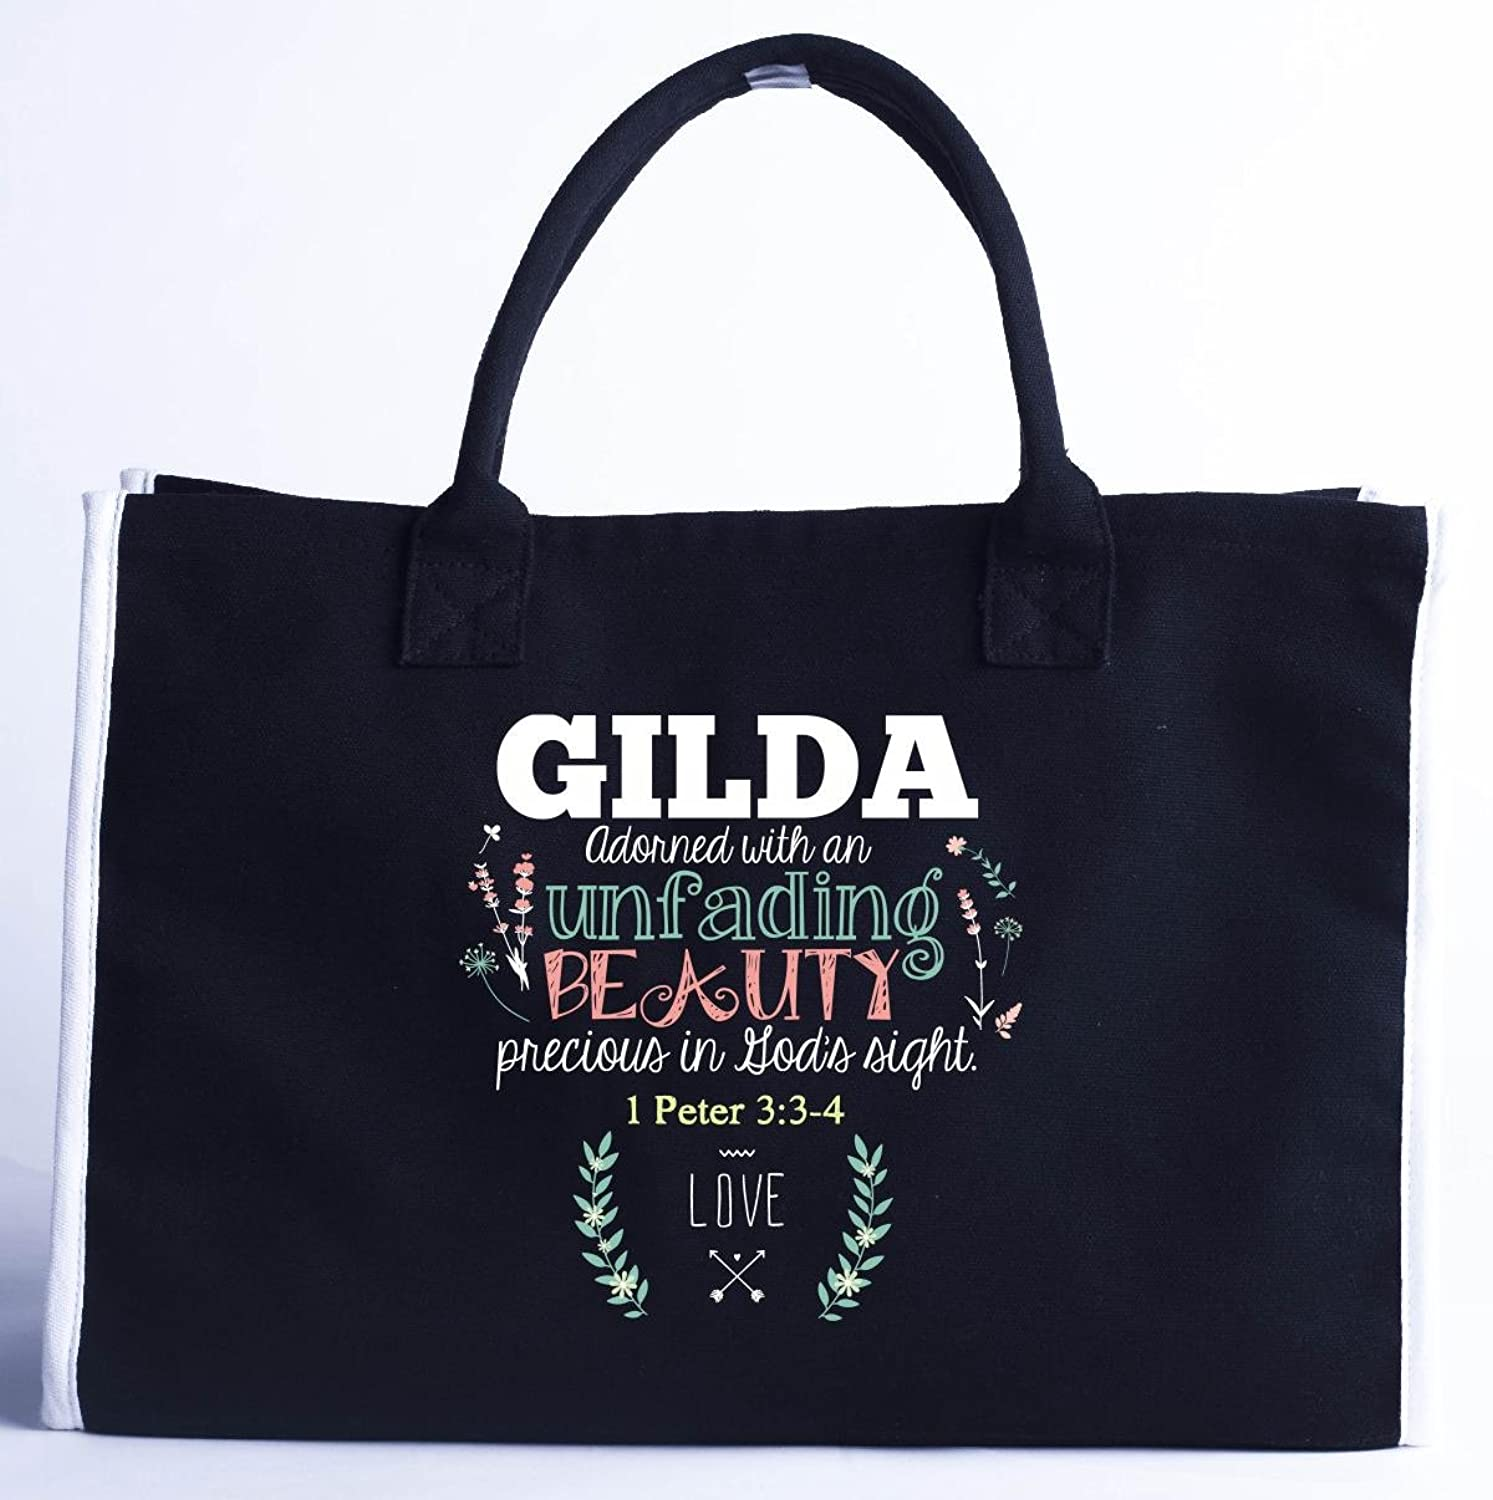 Gilda Adorned With An Unfading Beauty Precious - Fashion Customized Tote Bag